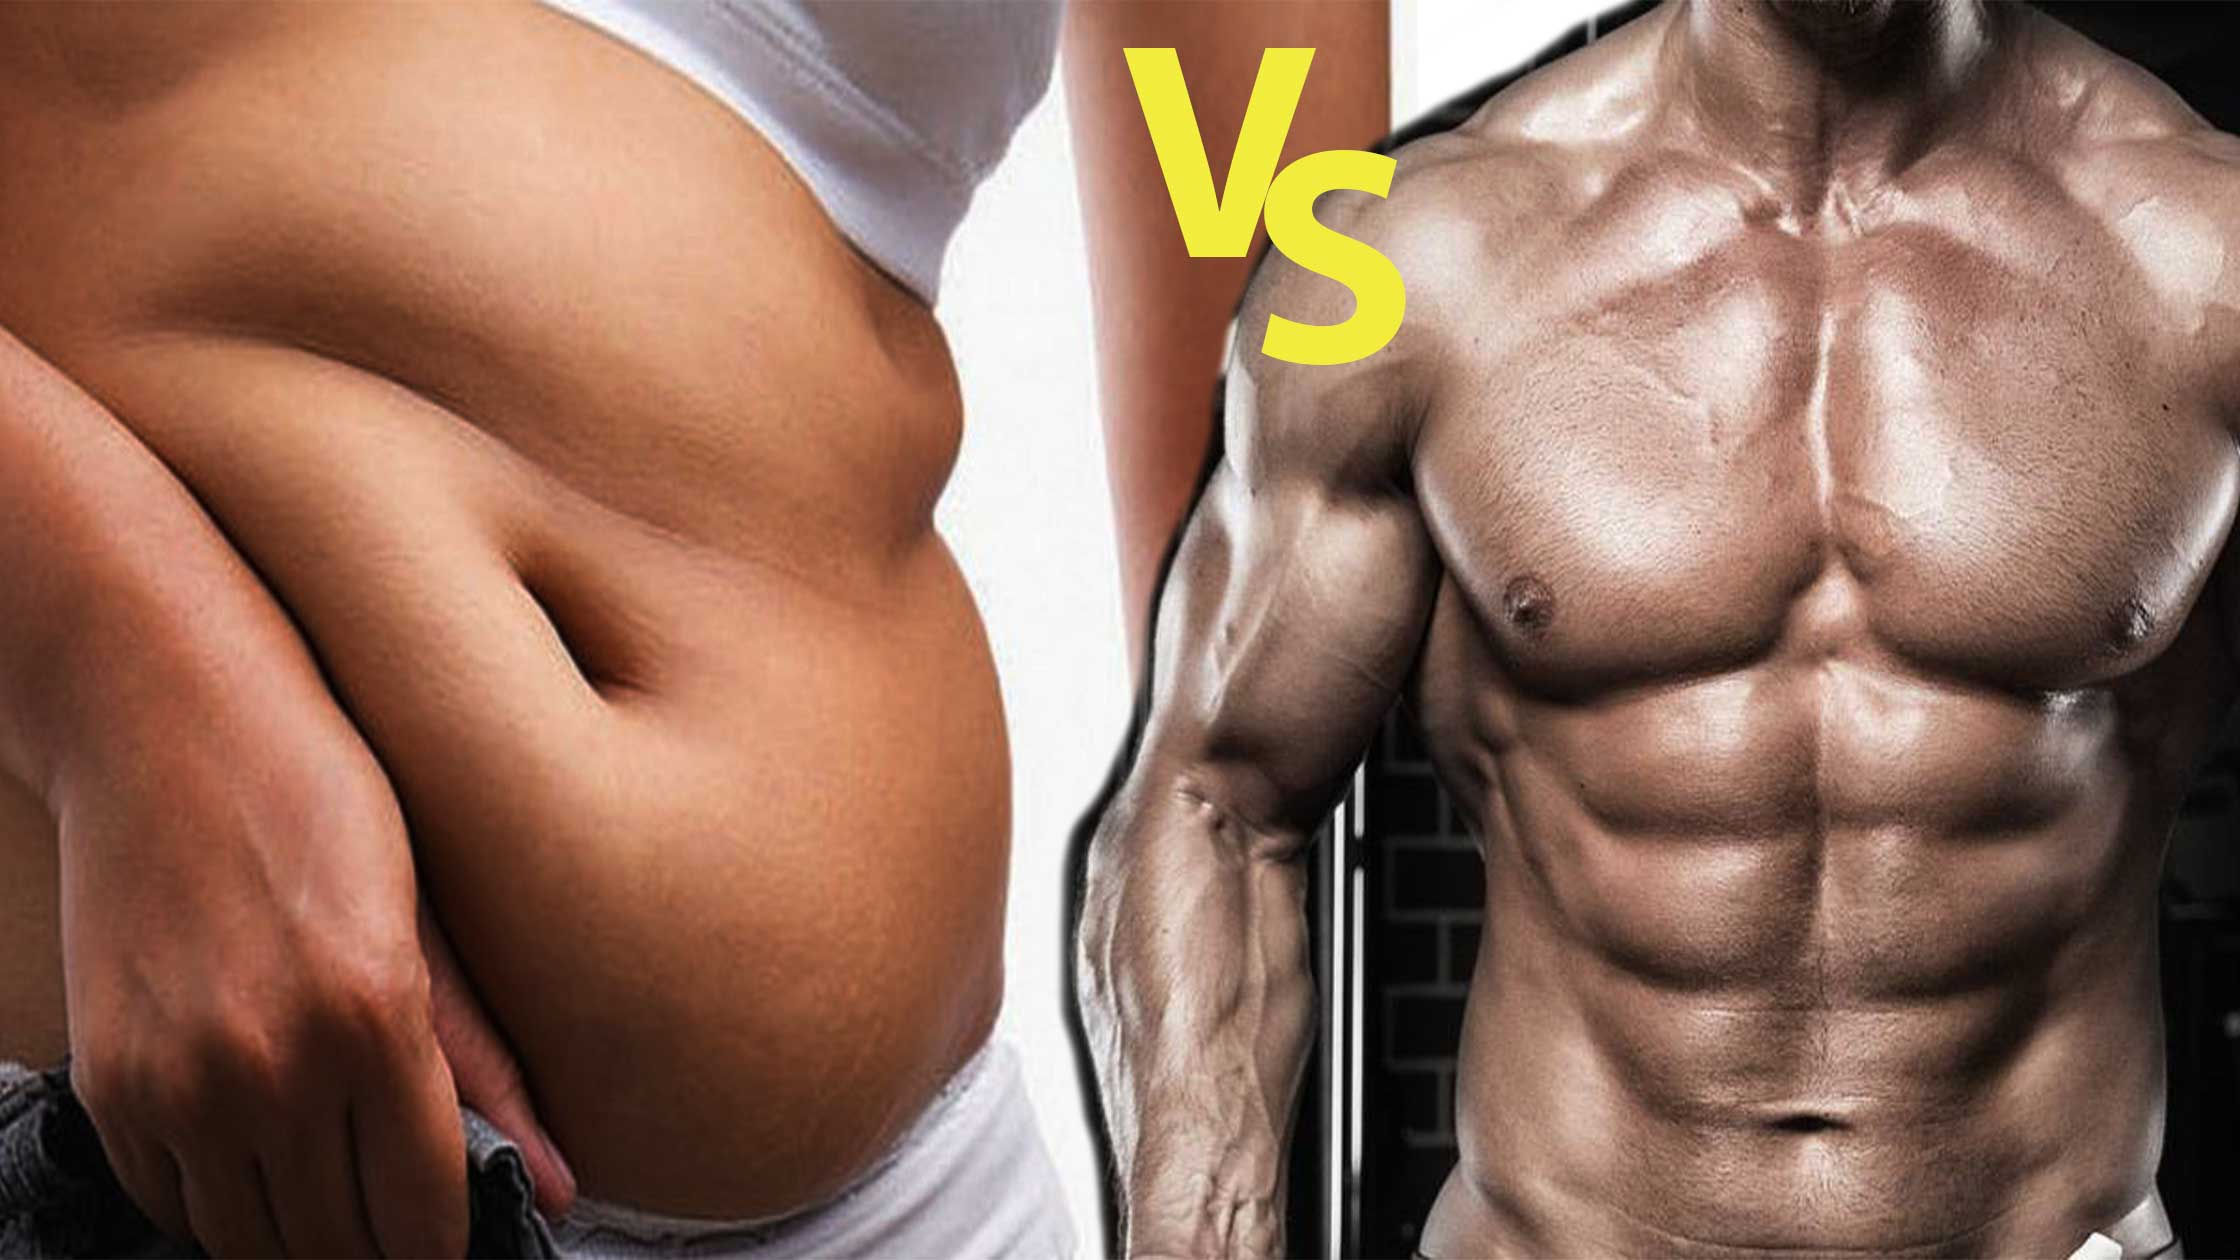 Fat vs Muscle- Comparison